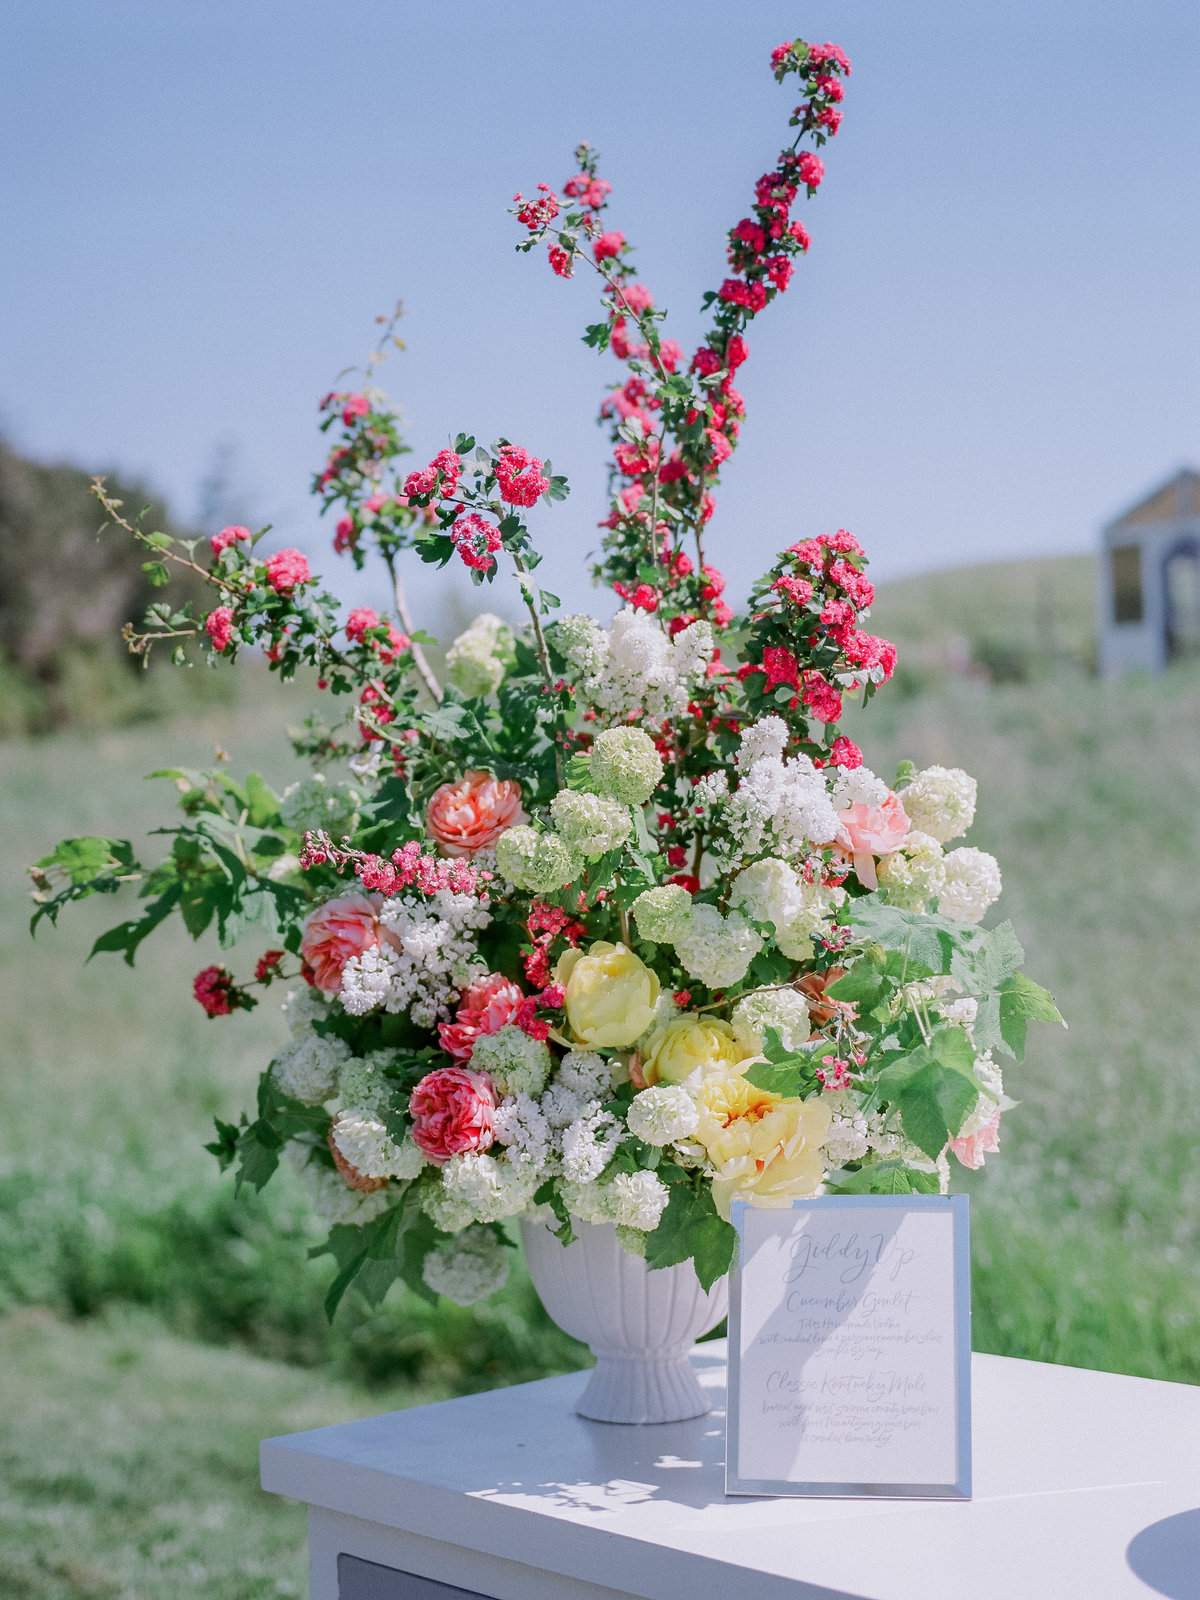 Flowers for wedding by Jenny Schneider Events at Olympia's Valley Estate in Petaluma, California. Photo by Lori Paladino Photography.